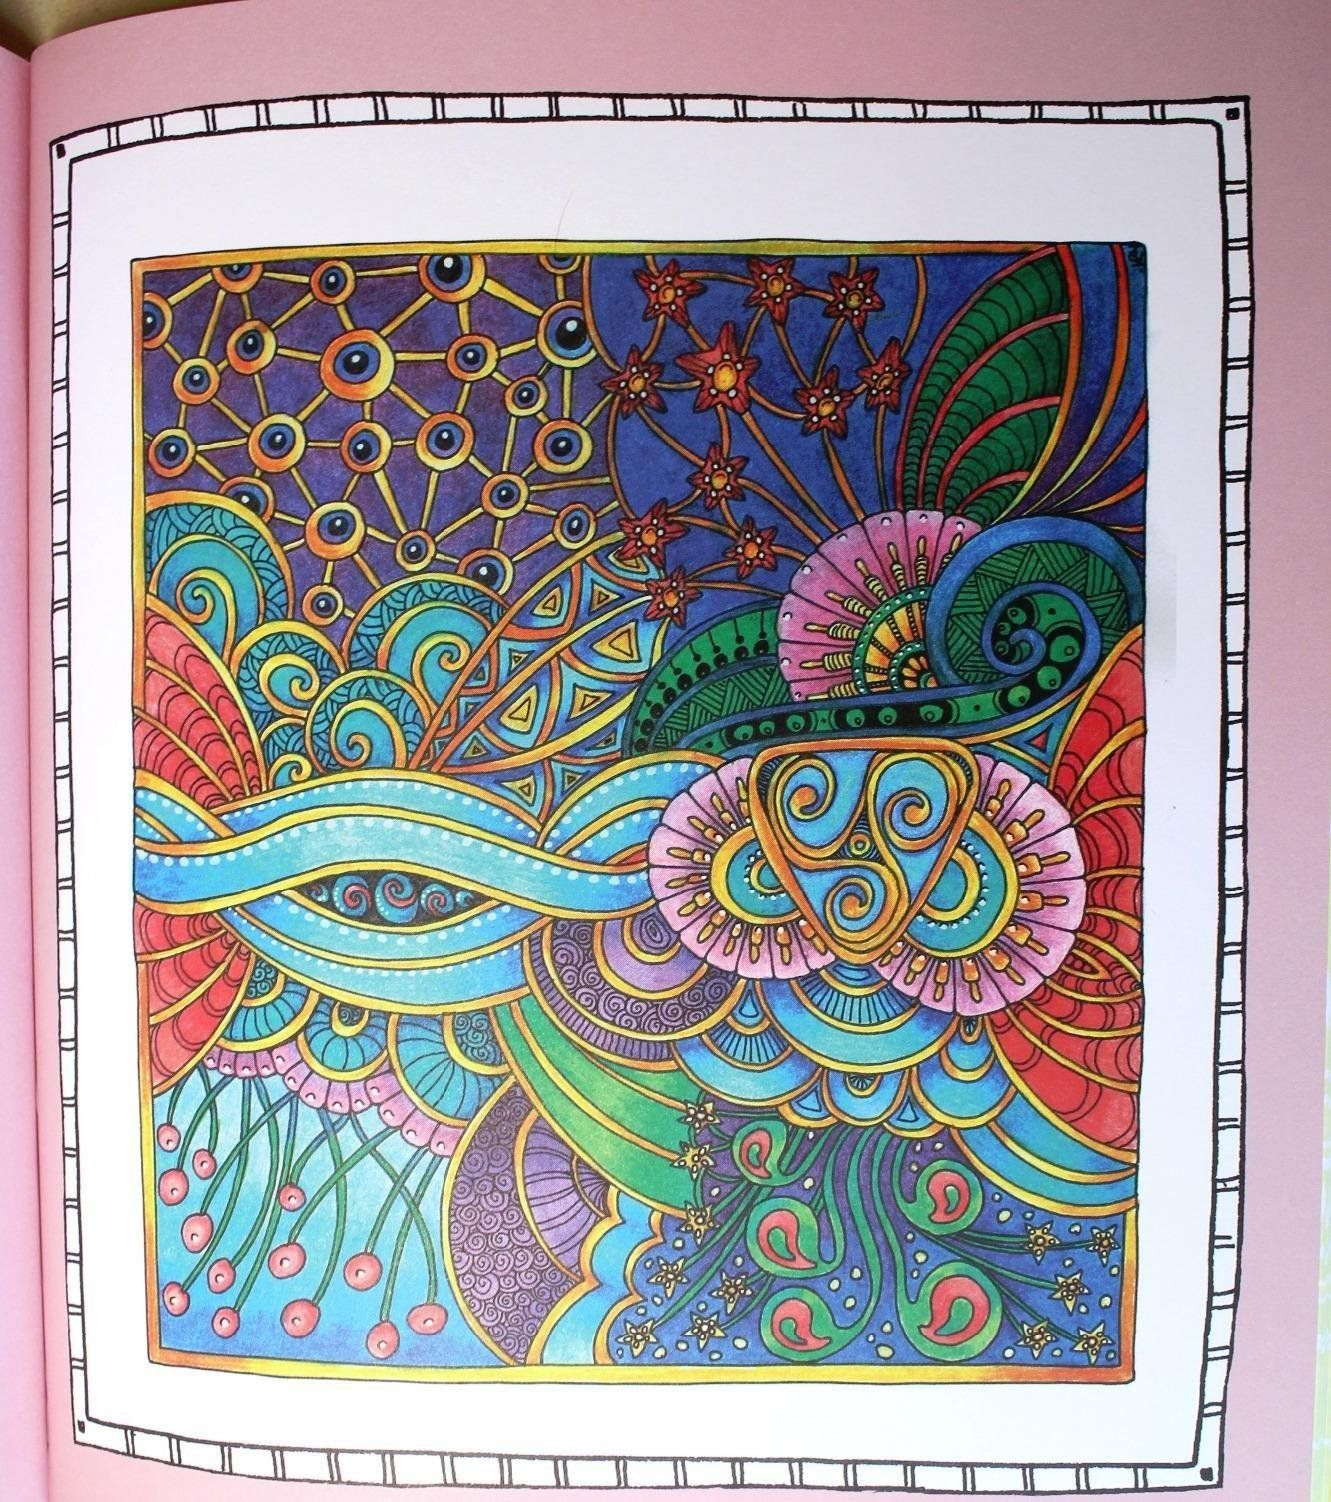 Color Me Stress Free Nearly 100 Coloring Templates To Unplug And Unwind A Zen Book Lacy Mucklow Angela Porter By Jackie Cooper On Sep 26